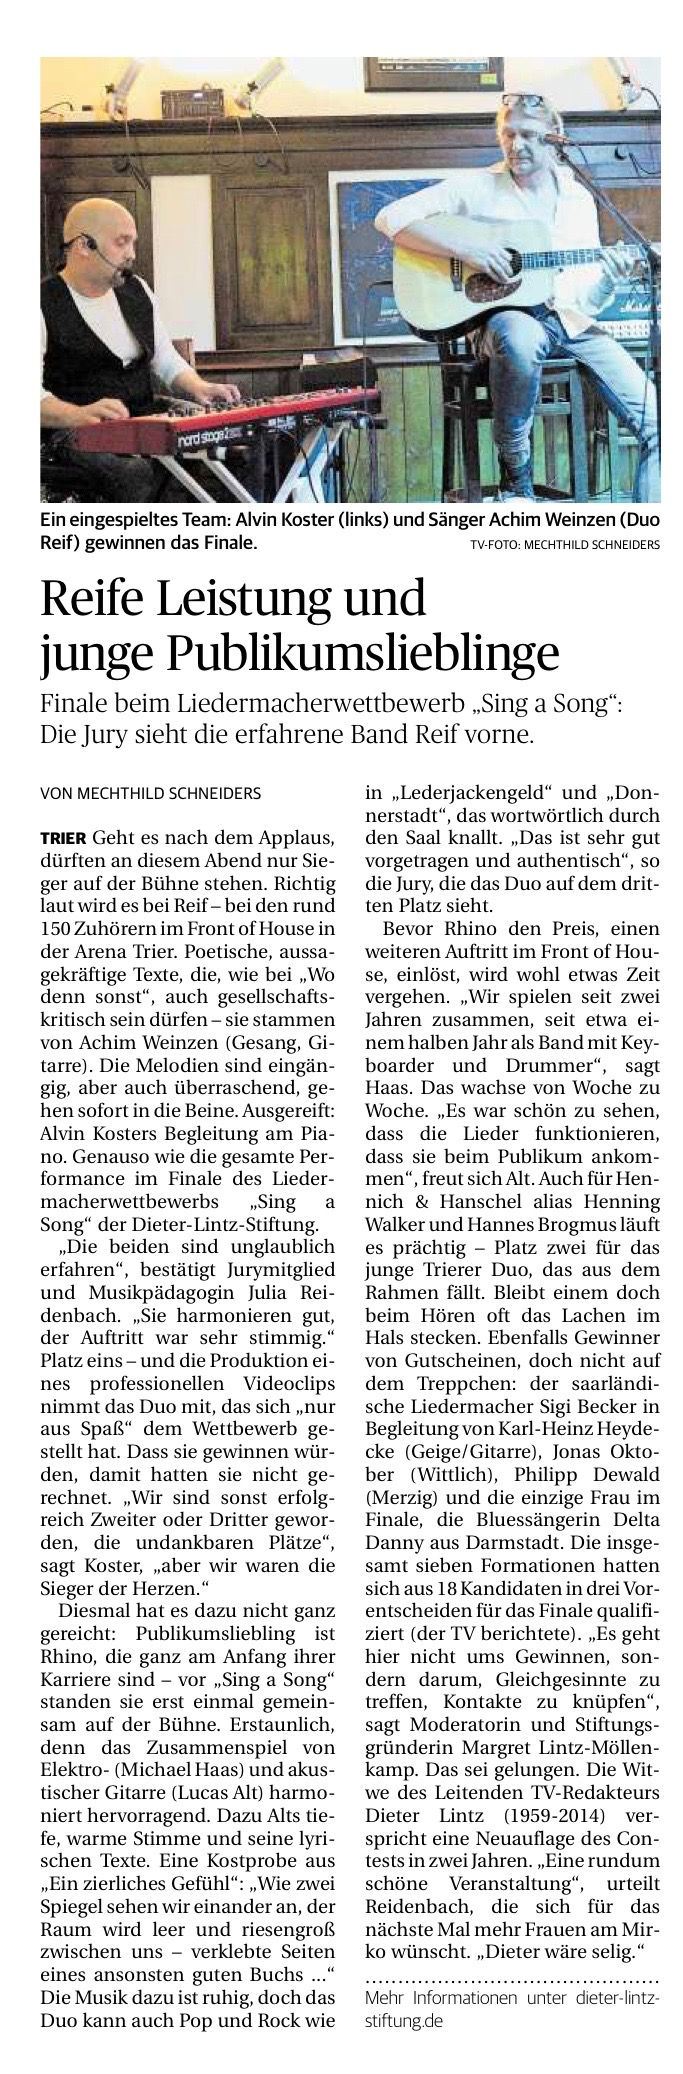 Sing an Song Finale 15_May.Welt2